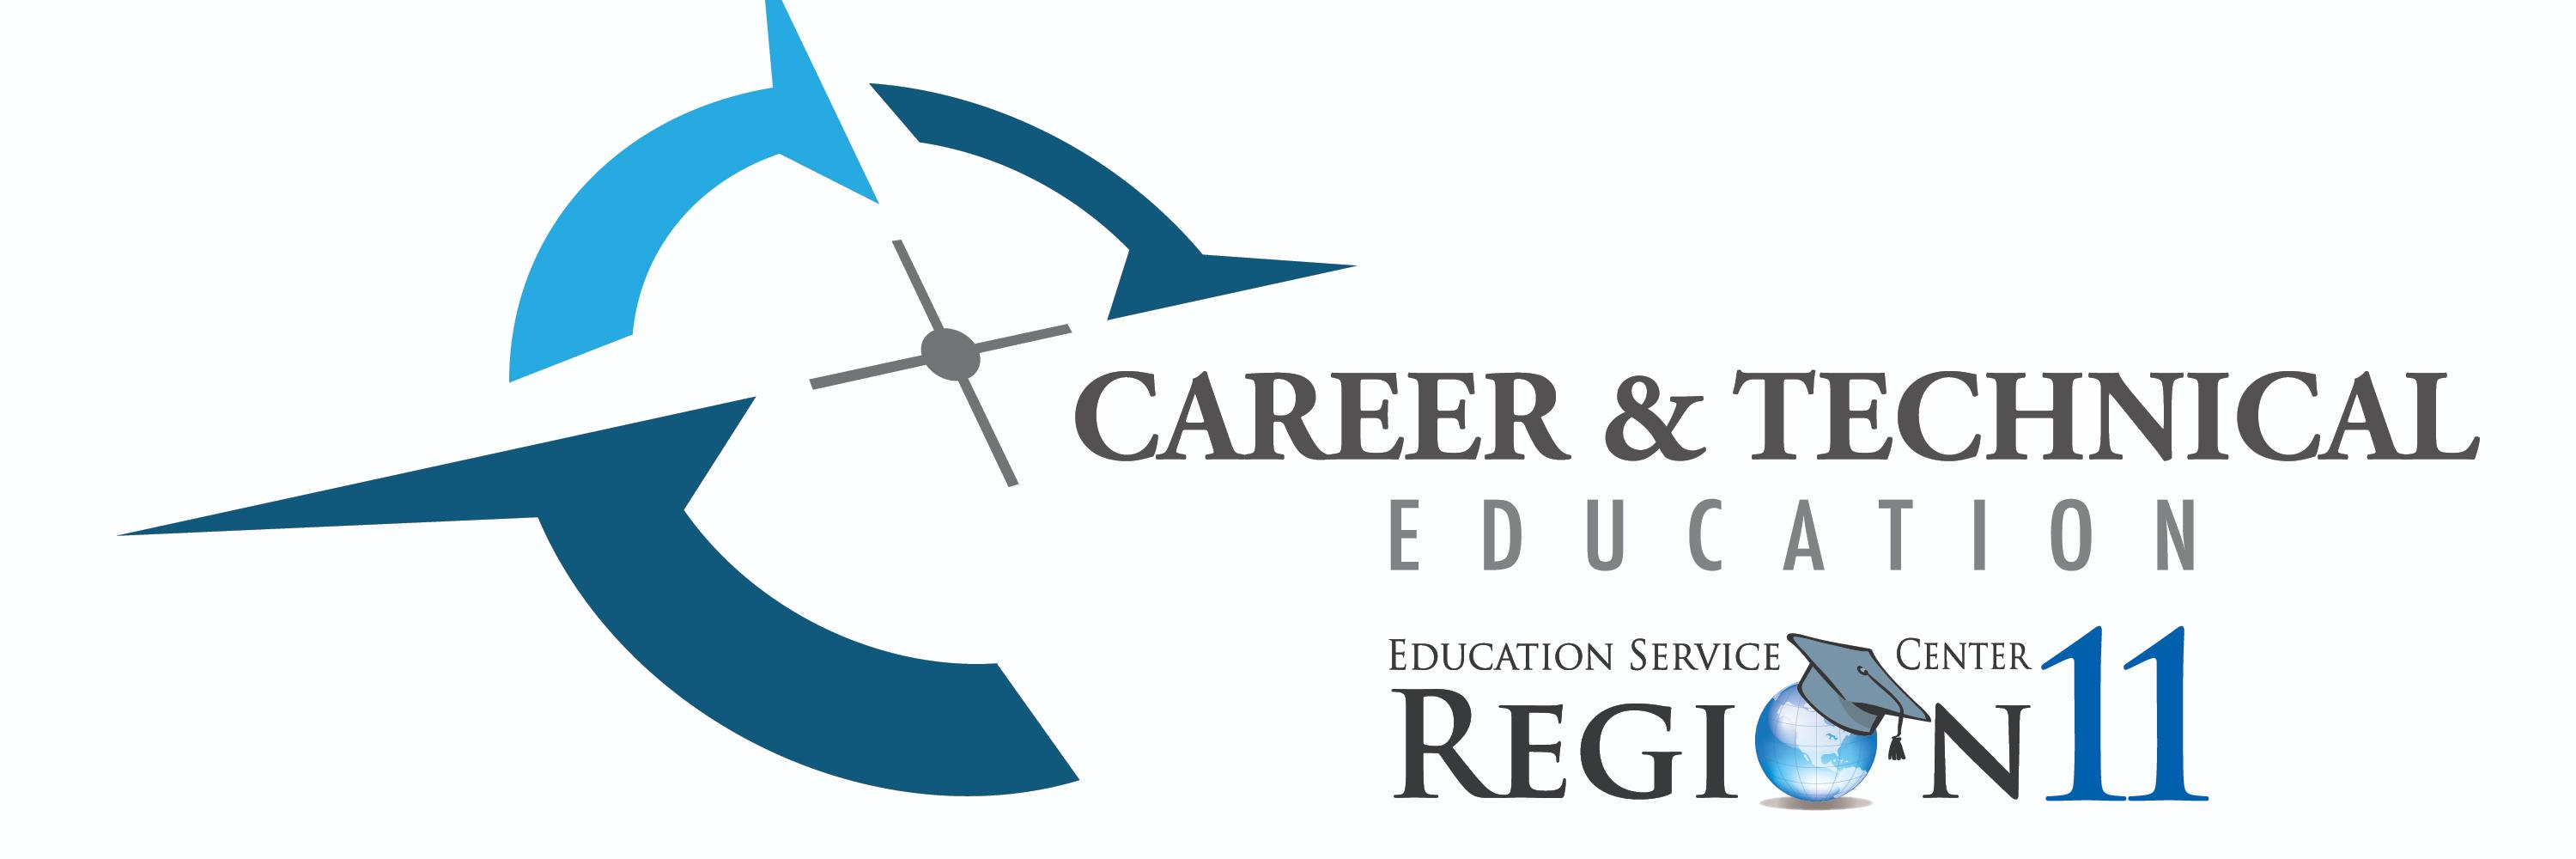 Excited to meet with our Region 11 CTE Leadership staff next week, great information and guest speakers to share wi… https://t.co/88eshXL1S9